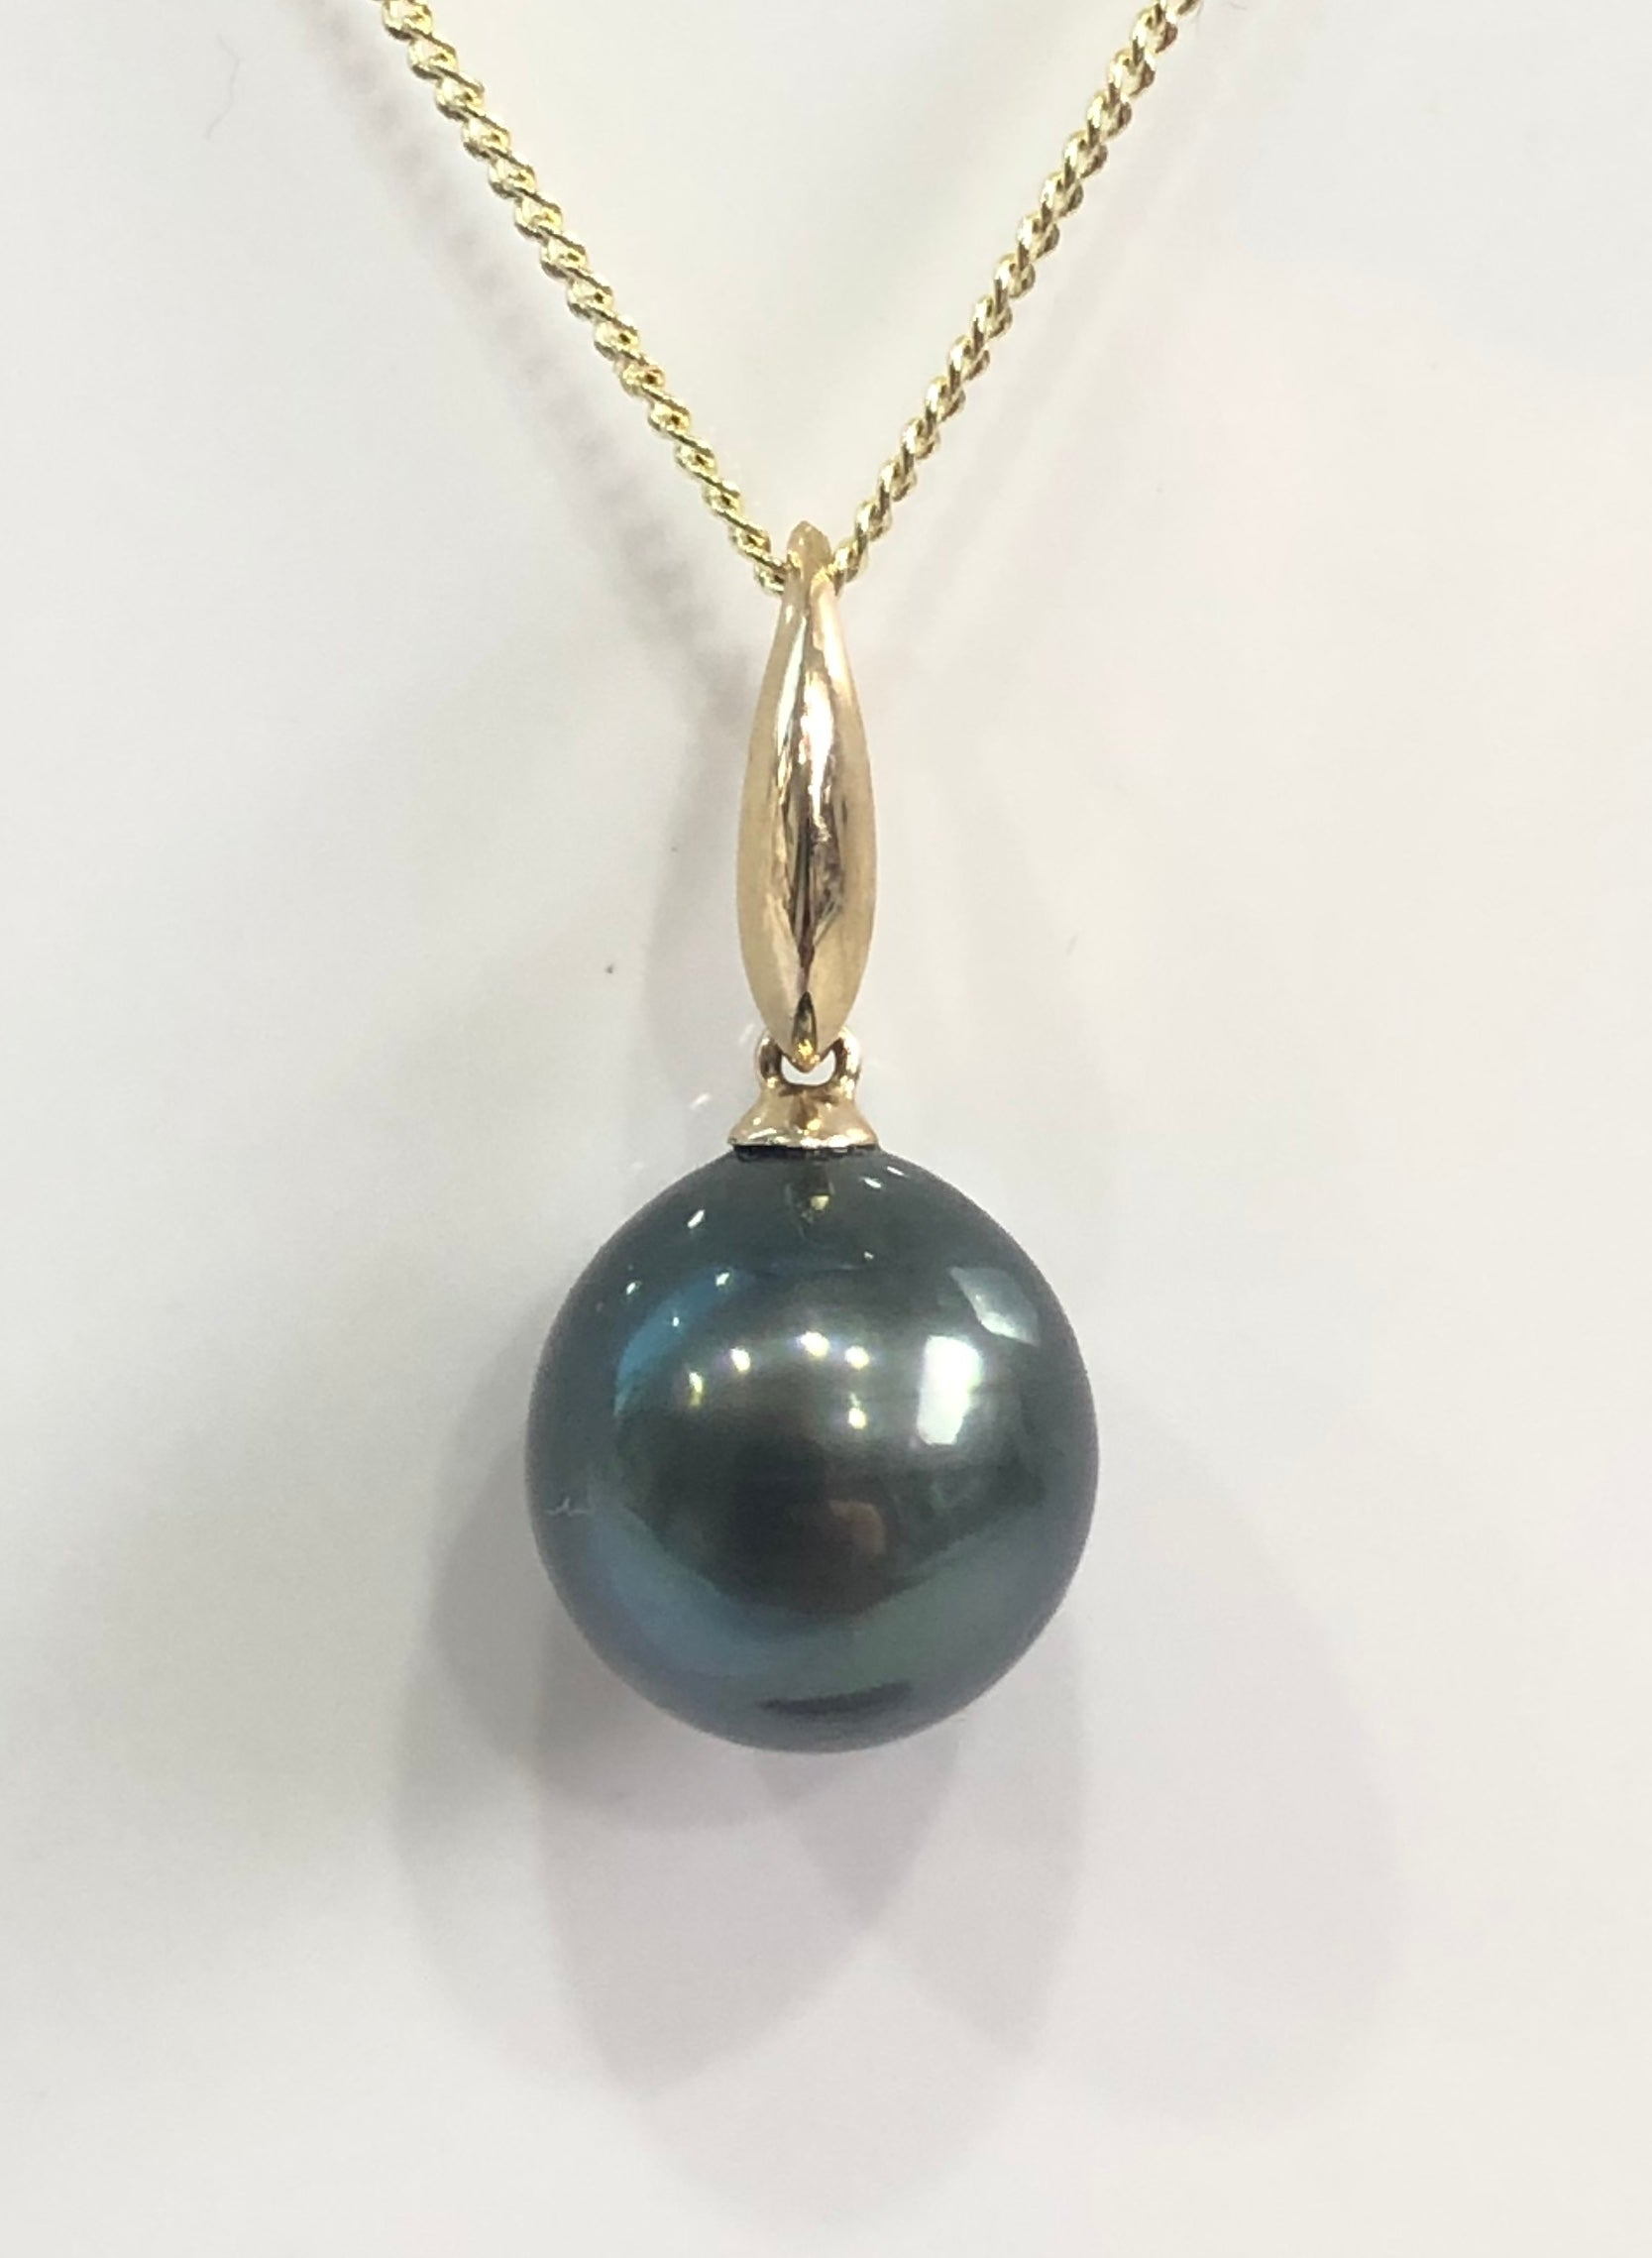 9ct Gold Pearl Pendant With A Tahitian Black Pearl - 12